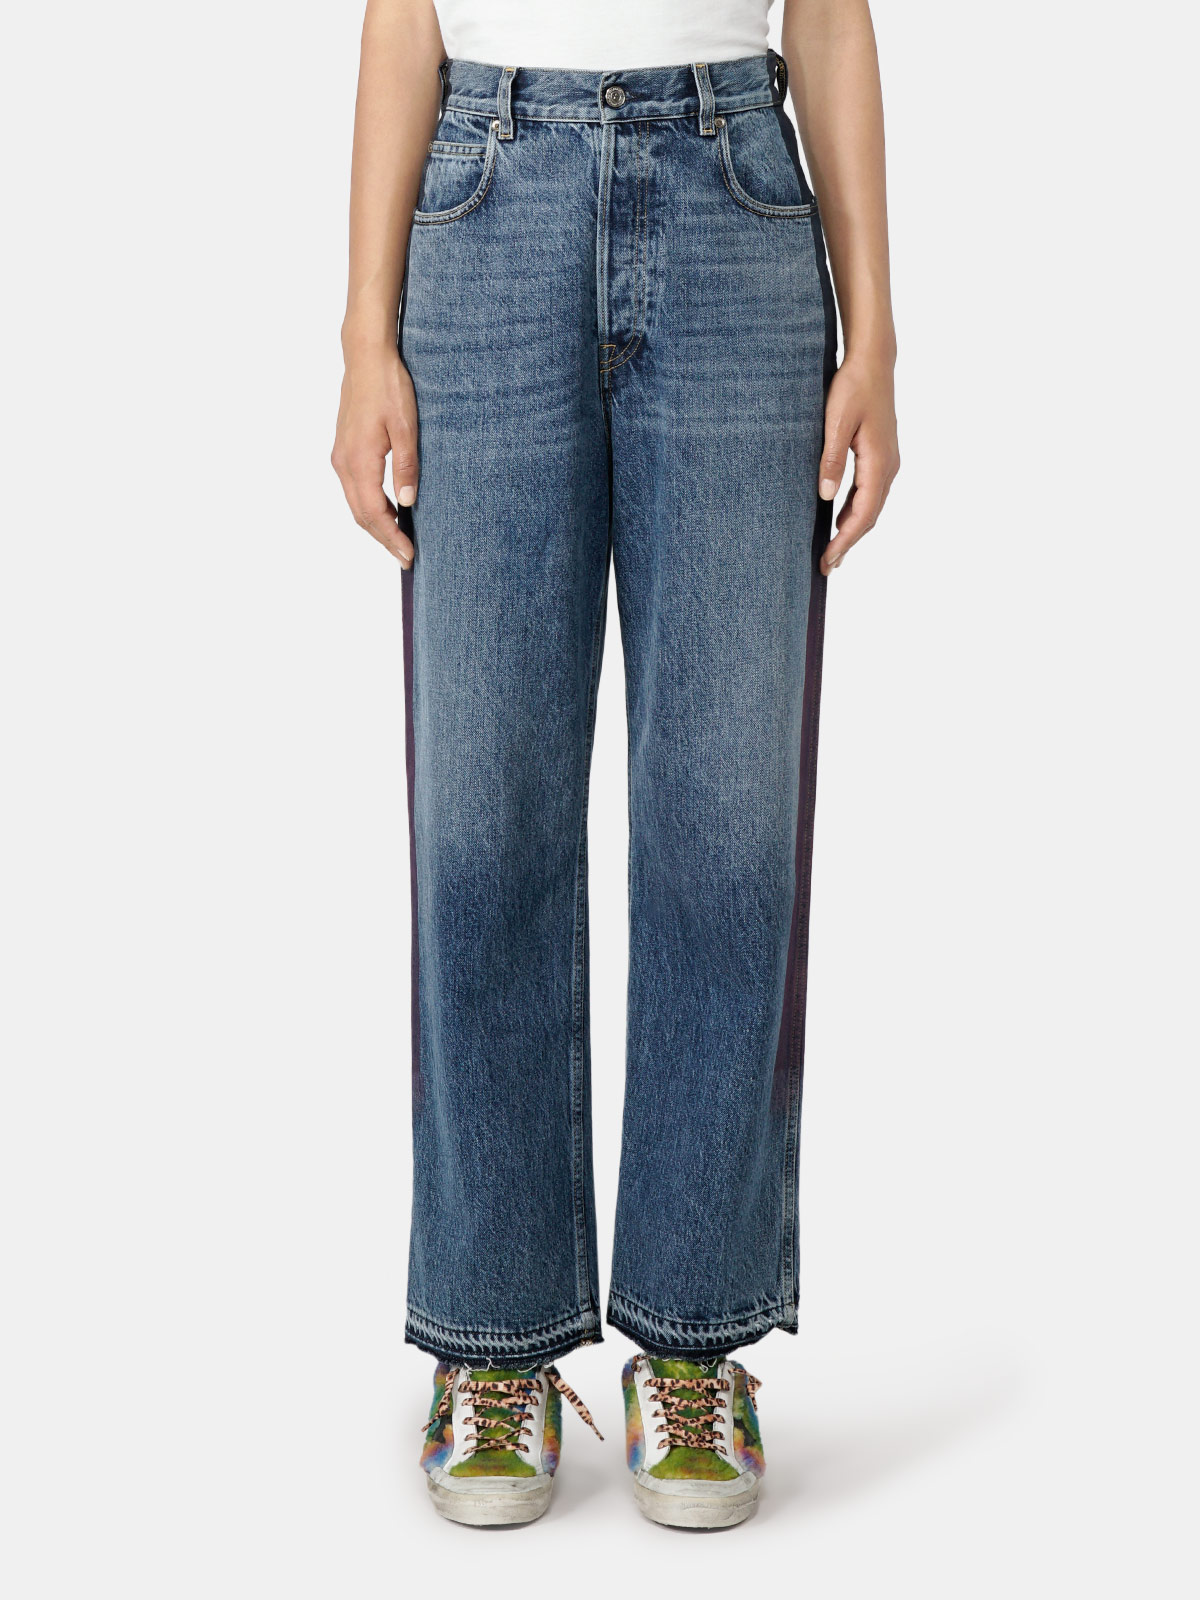 Golden Goose - Kim jeans in mid wash denim with shaded-effect side band   in